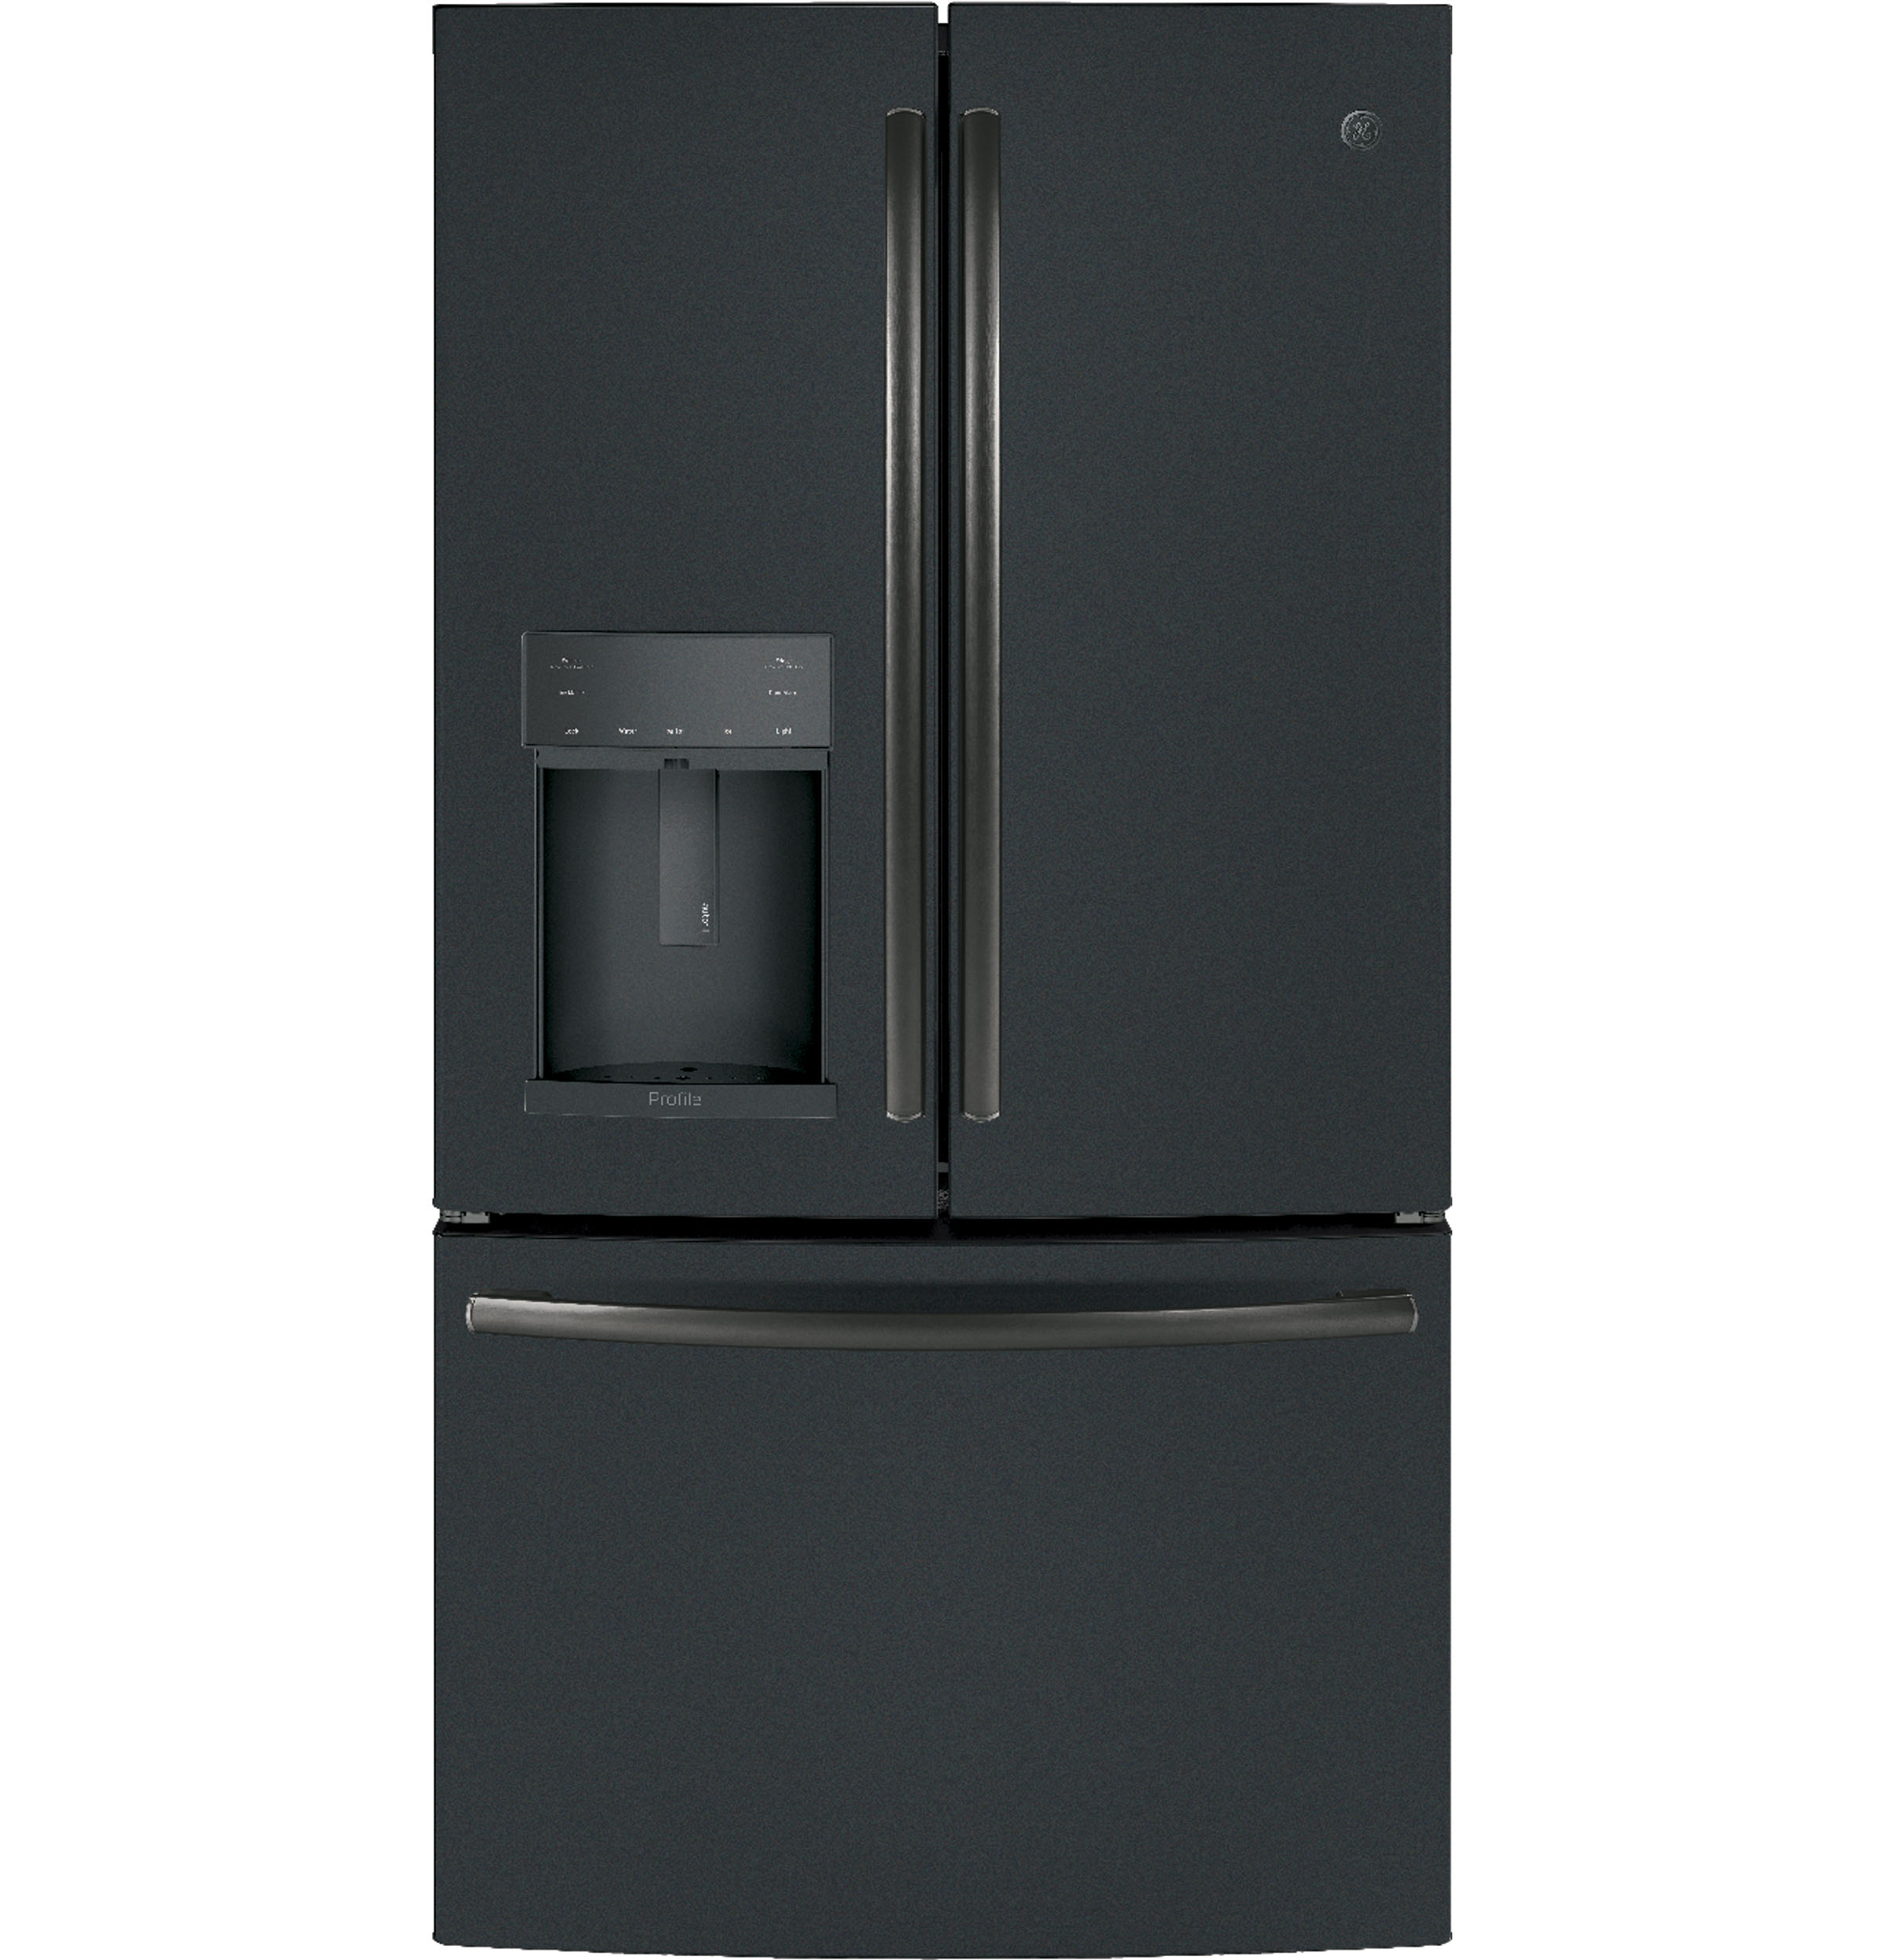 GE Profile™ Series ENERGY STAR® 22.2 Cu. Ft. Counter-Depth French-Door Refrigerator.